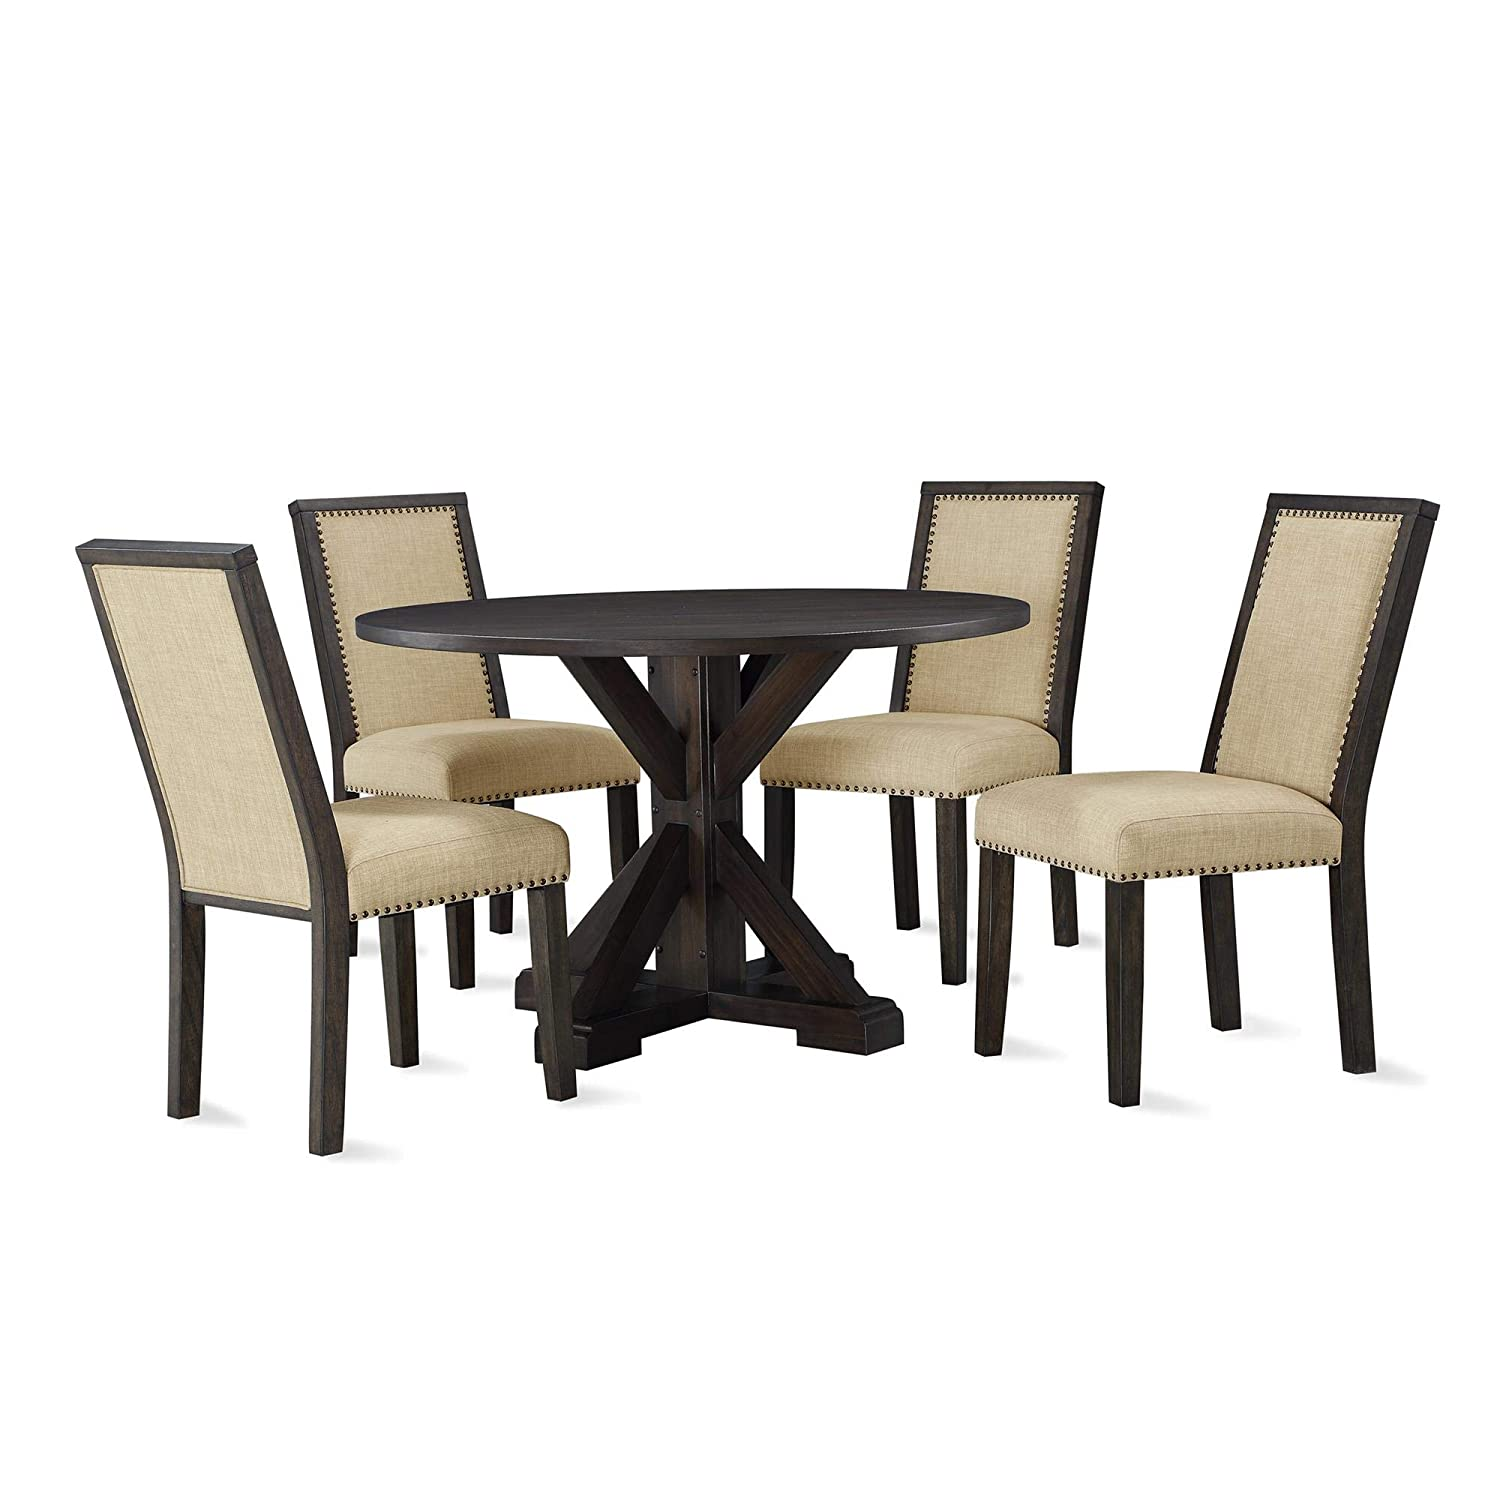 Lanley 5-Piece Round, Rustic Brown Dining Set,